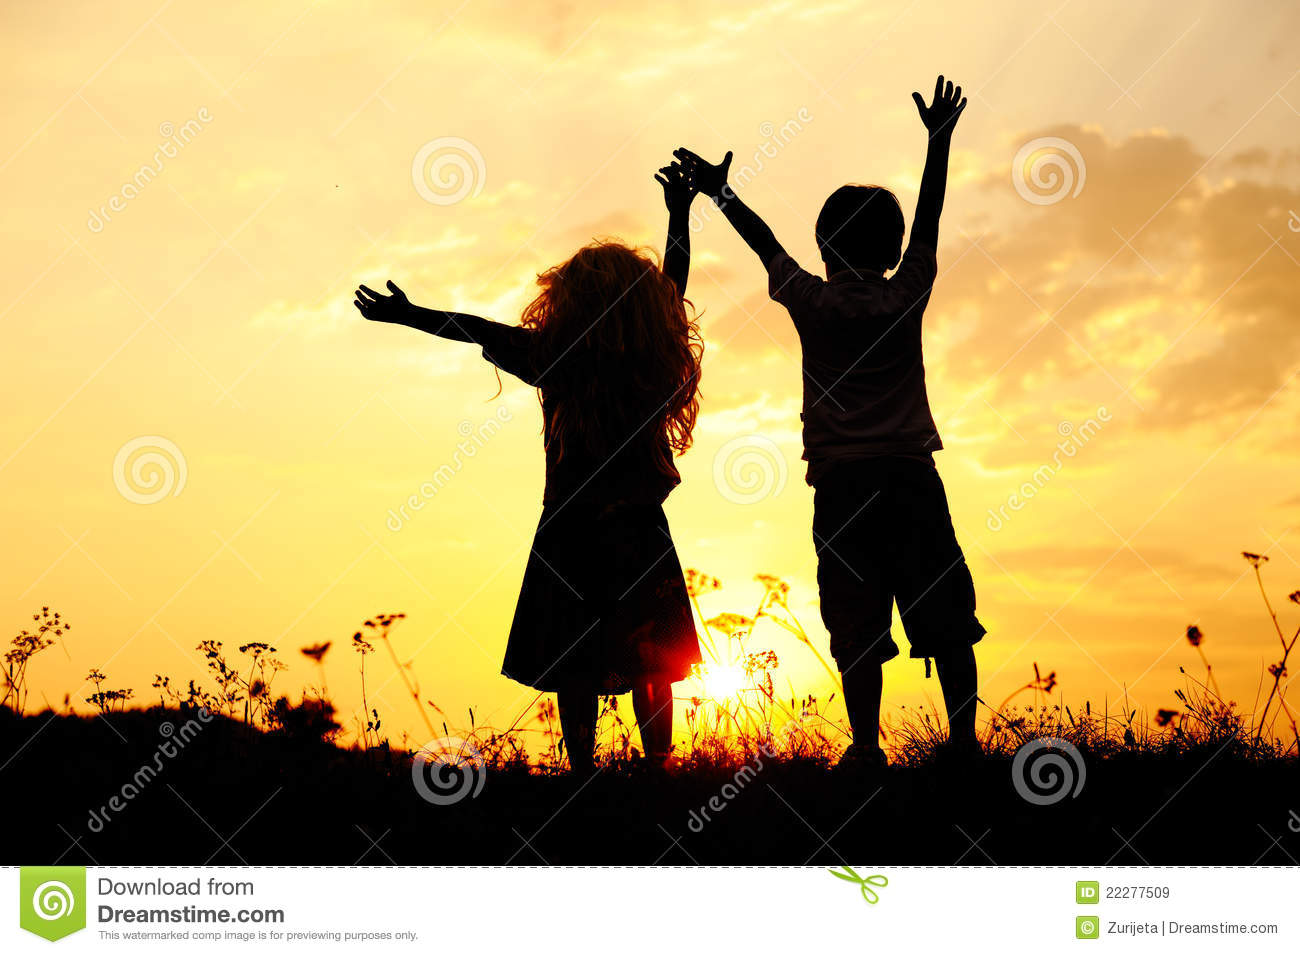 Silhouette, happy children playing